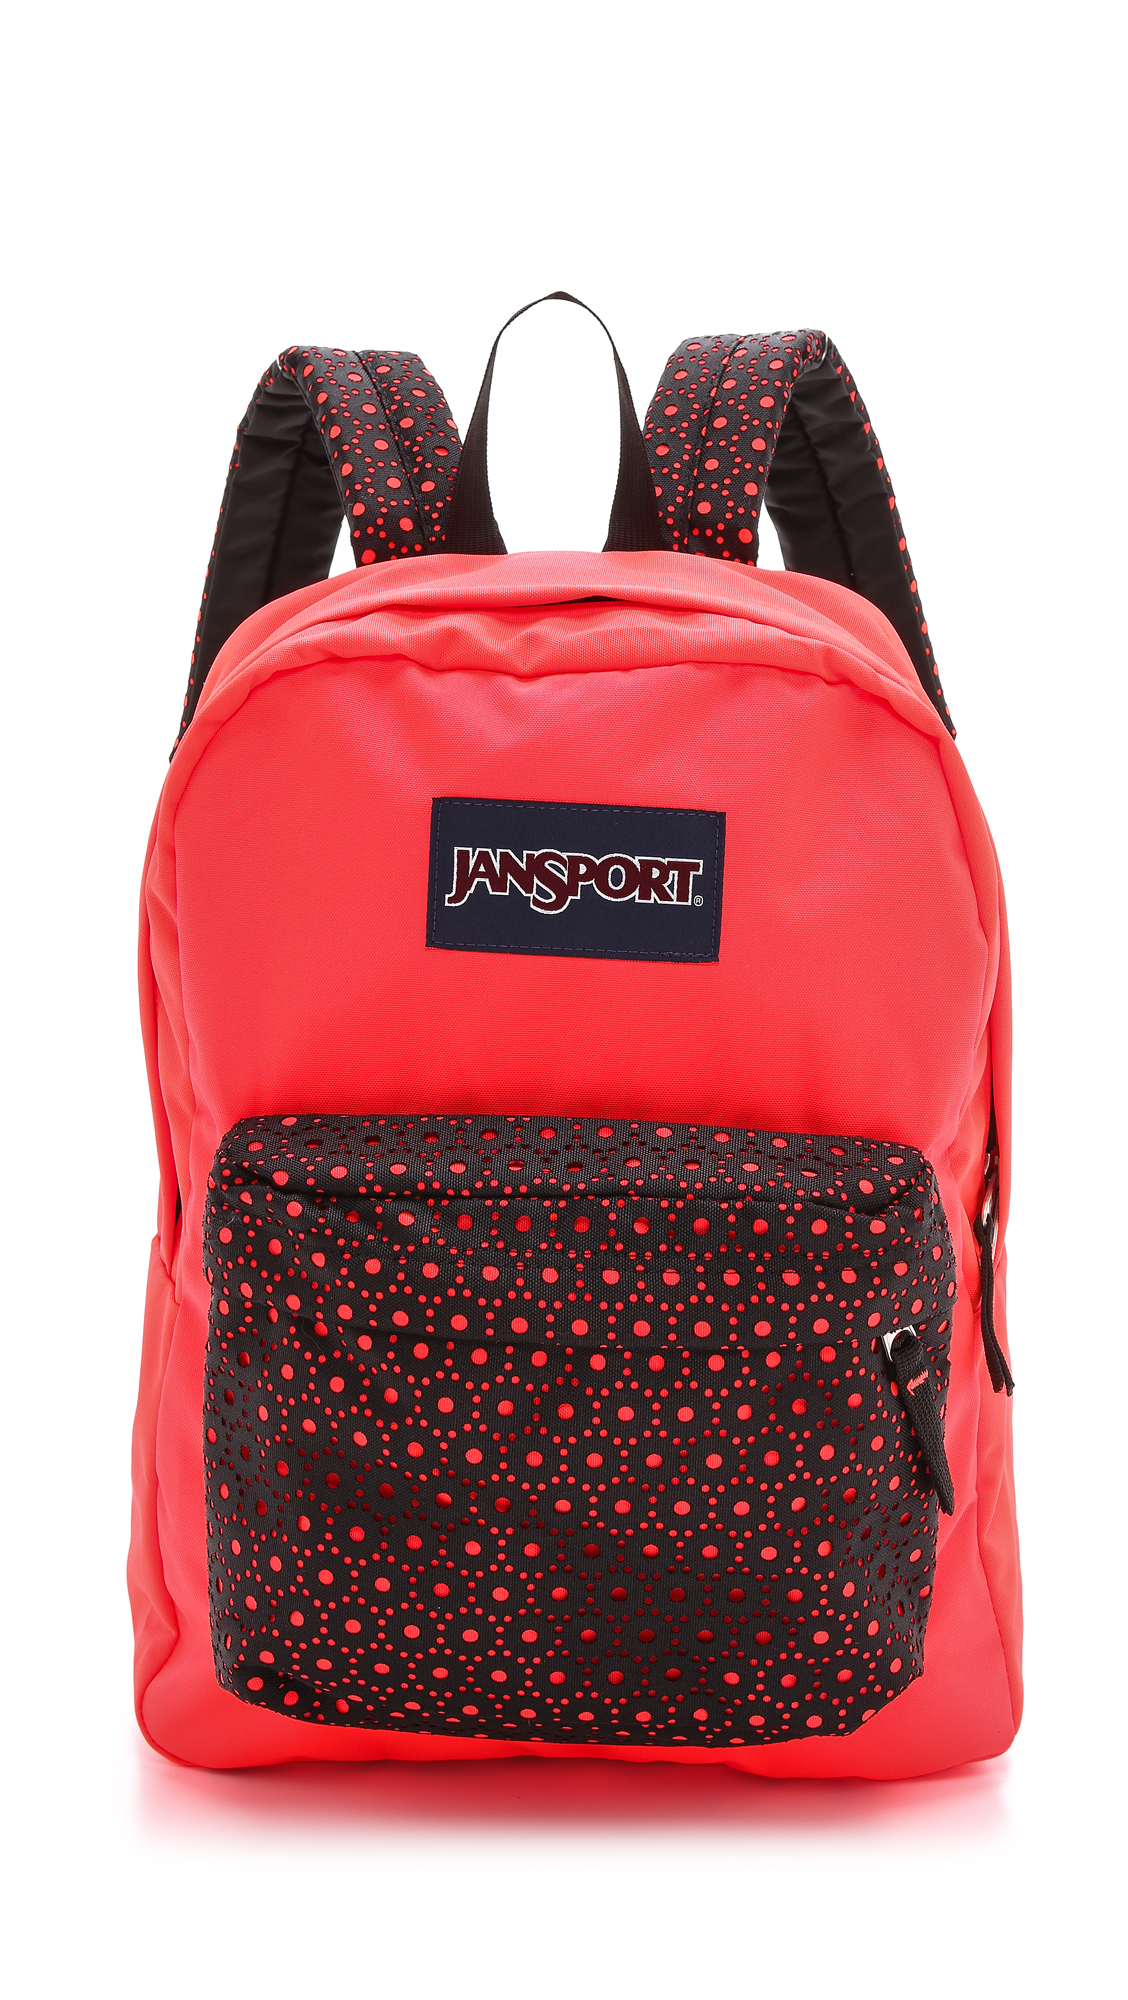 Lyst - Jansport High Stakes Backpack - Black Laser Lace in Red